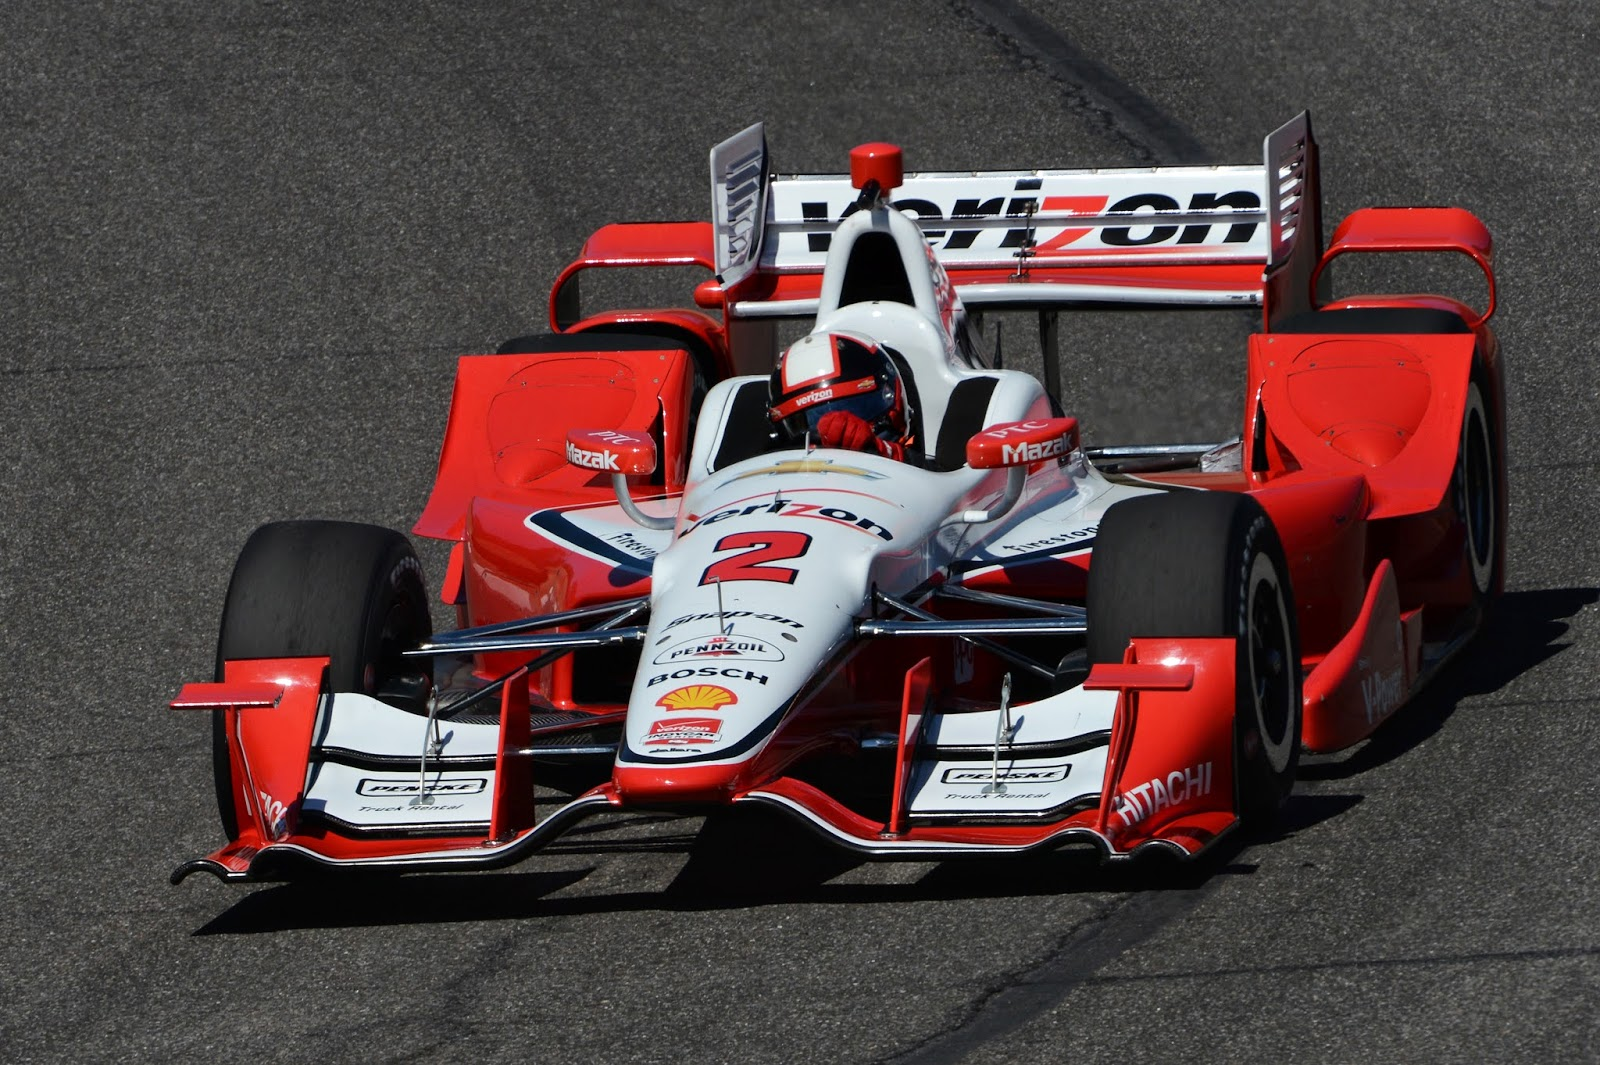 Penske running a fairly stock Chevy aero kit setup.